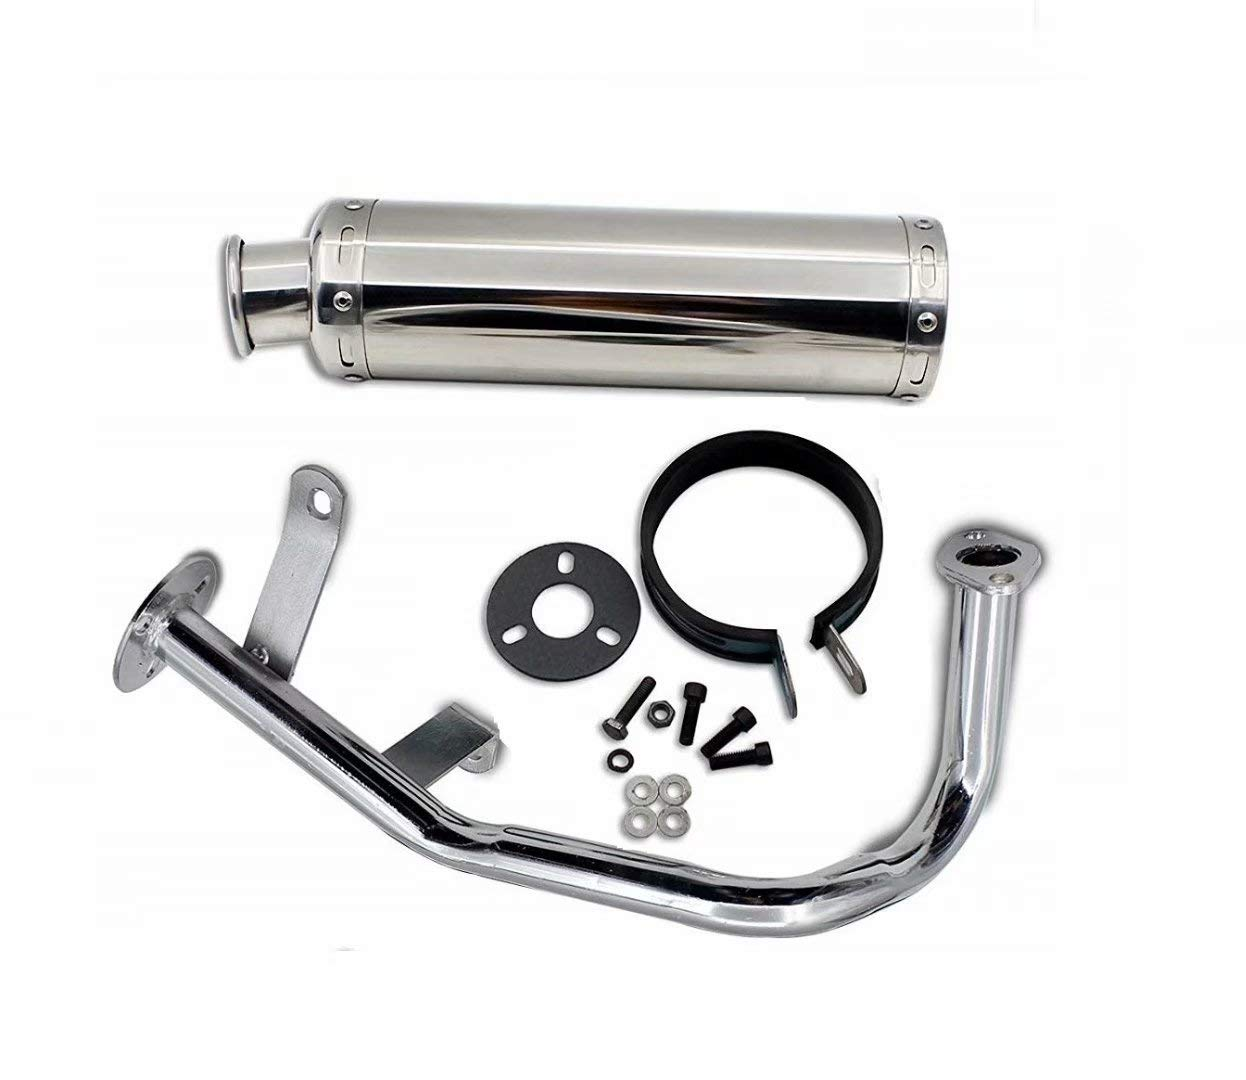 NEW! Performance Exhaust System Muffler for GY6 139QMB QMB139 1P39QMB 4 Stroke 50cc 150cc Scooters (50cc, Silver) by BLUE ELF